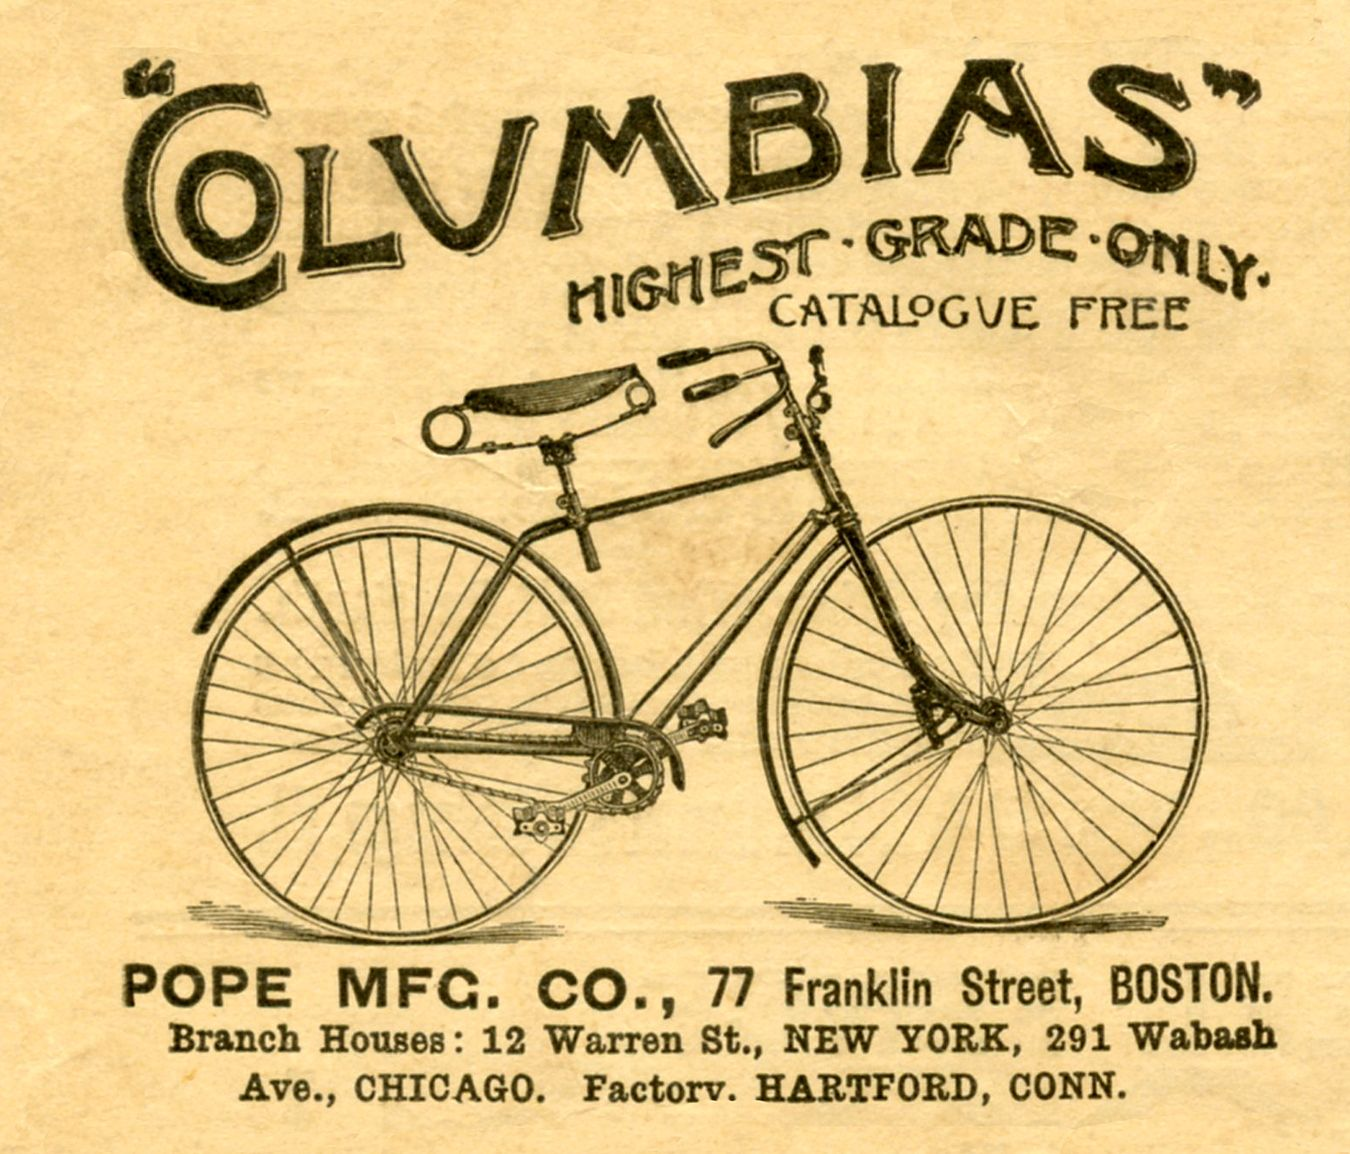 Vintage Advertising Clip Art - Antique Bicycle | Antique bicycles ...